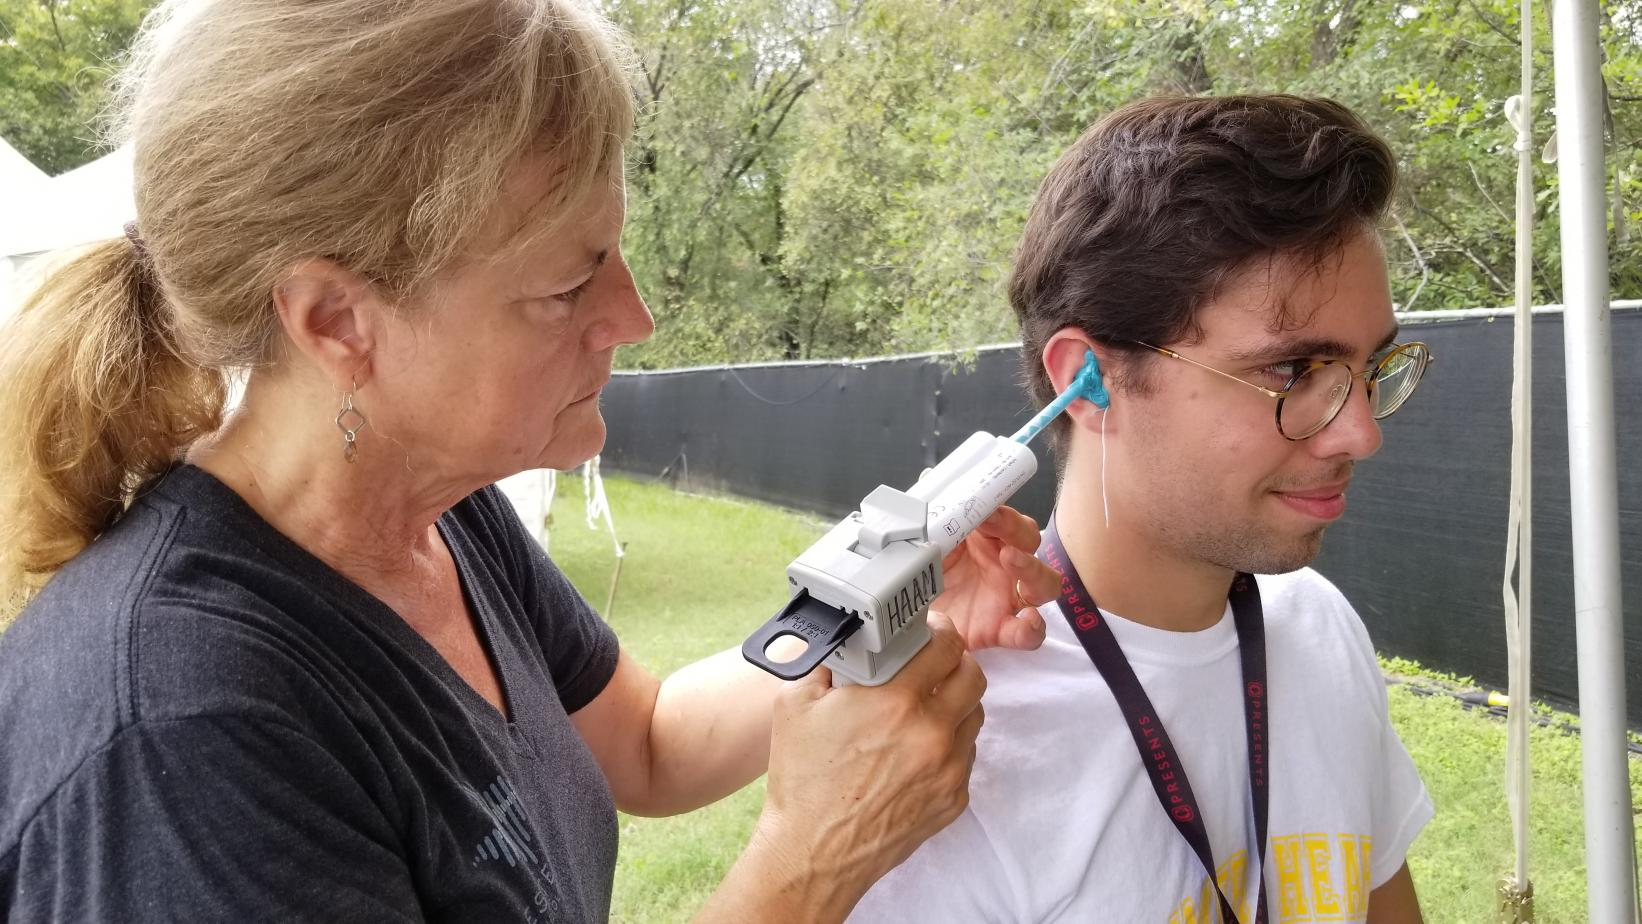 A MusiCares client receives custom molded earplugs